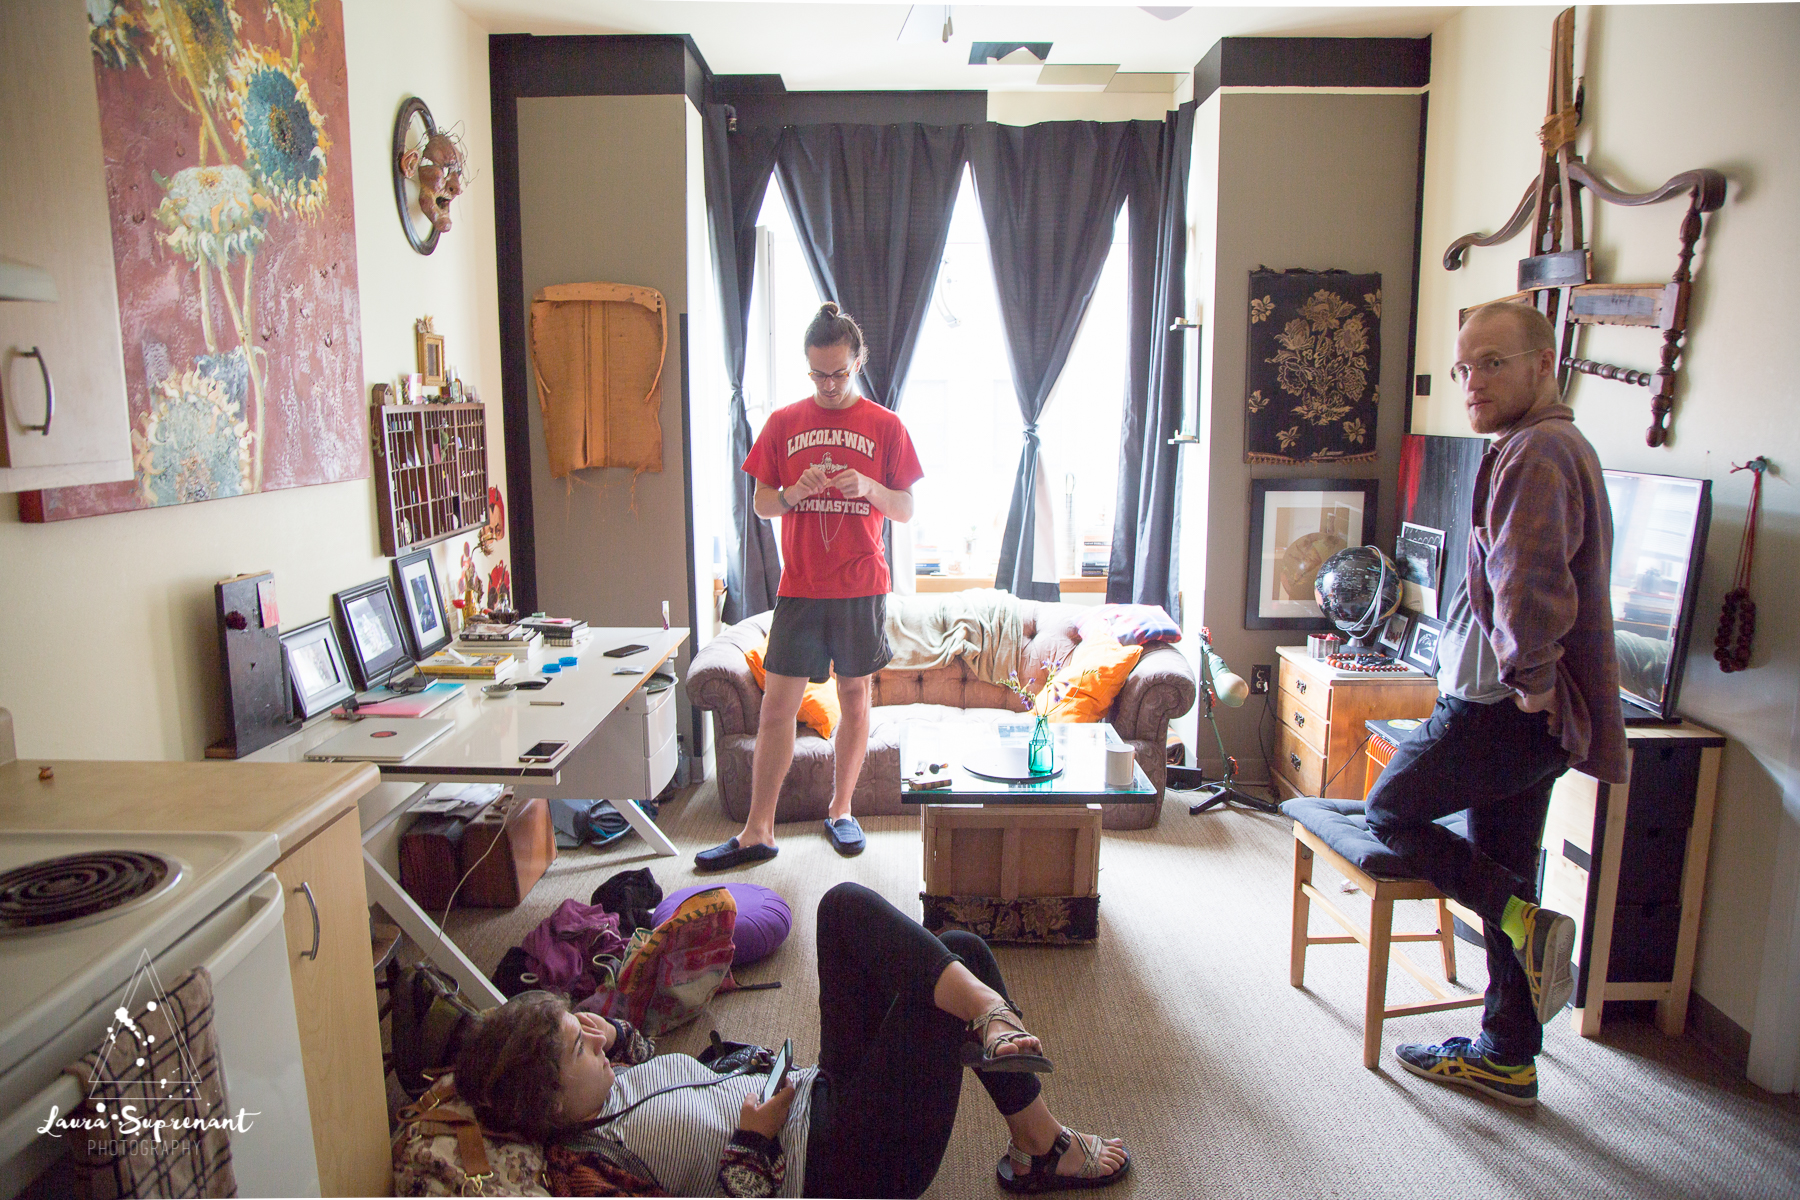 portland_travel_photography_friends_family (19 of 116).jpg